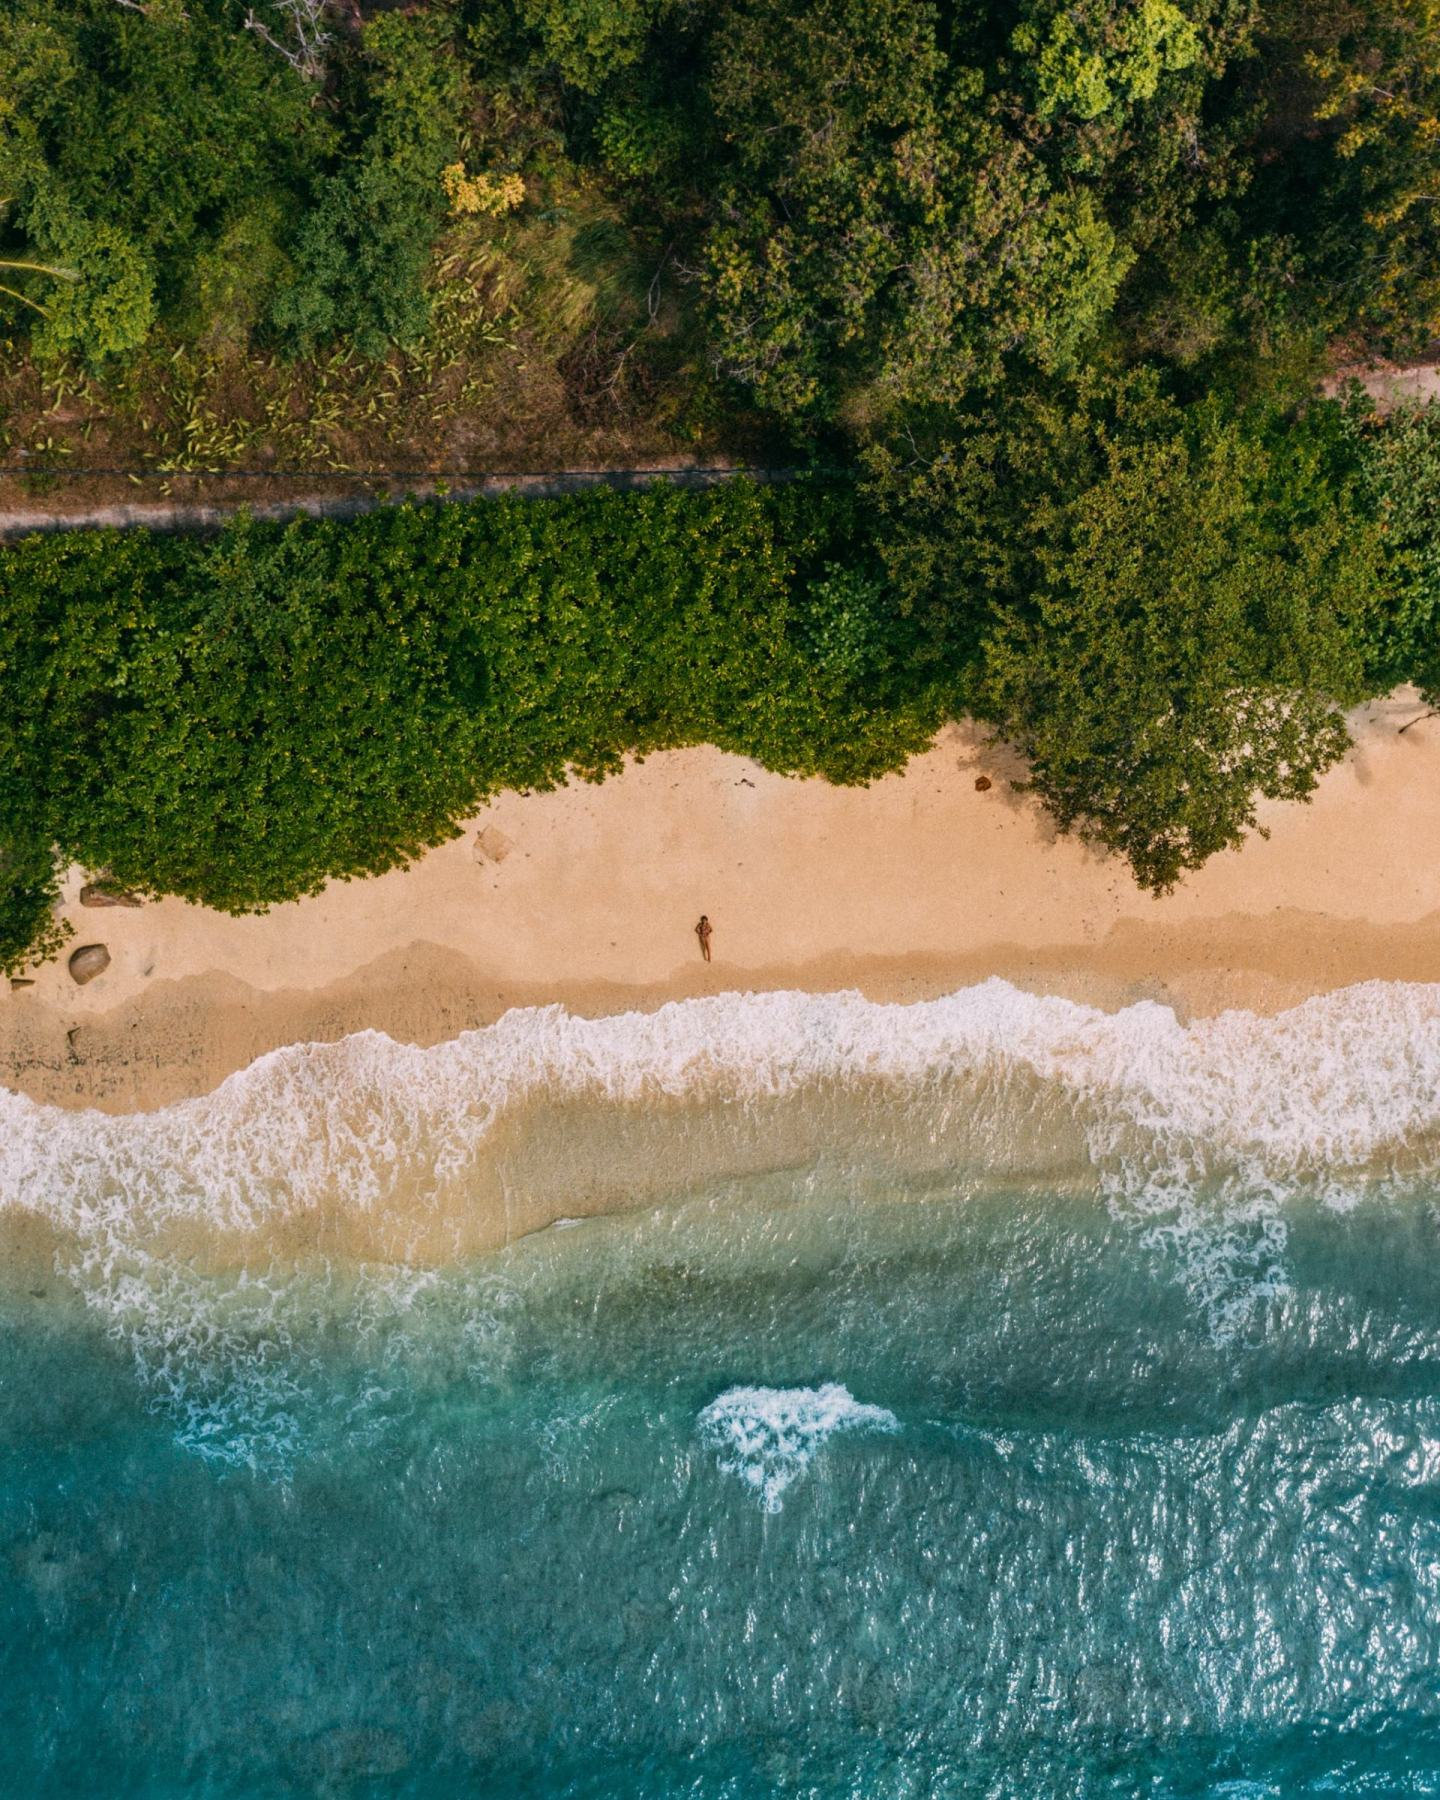 women at the beach view from a drone